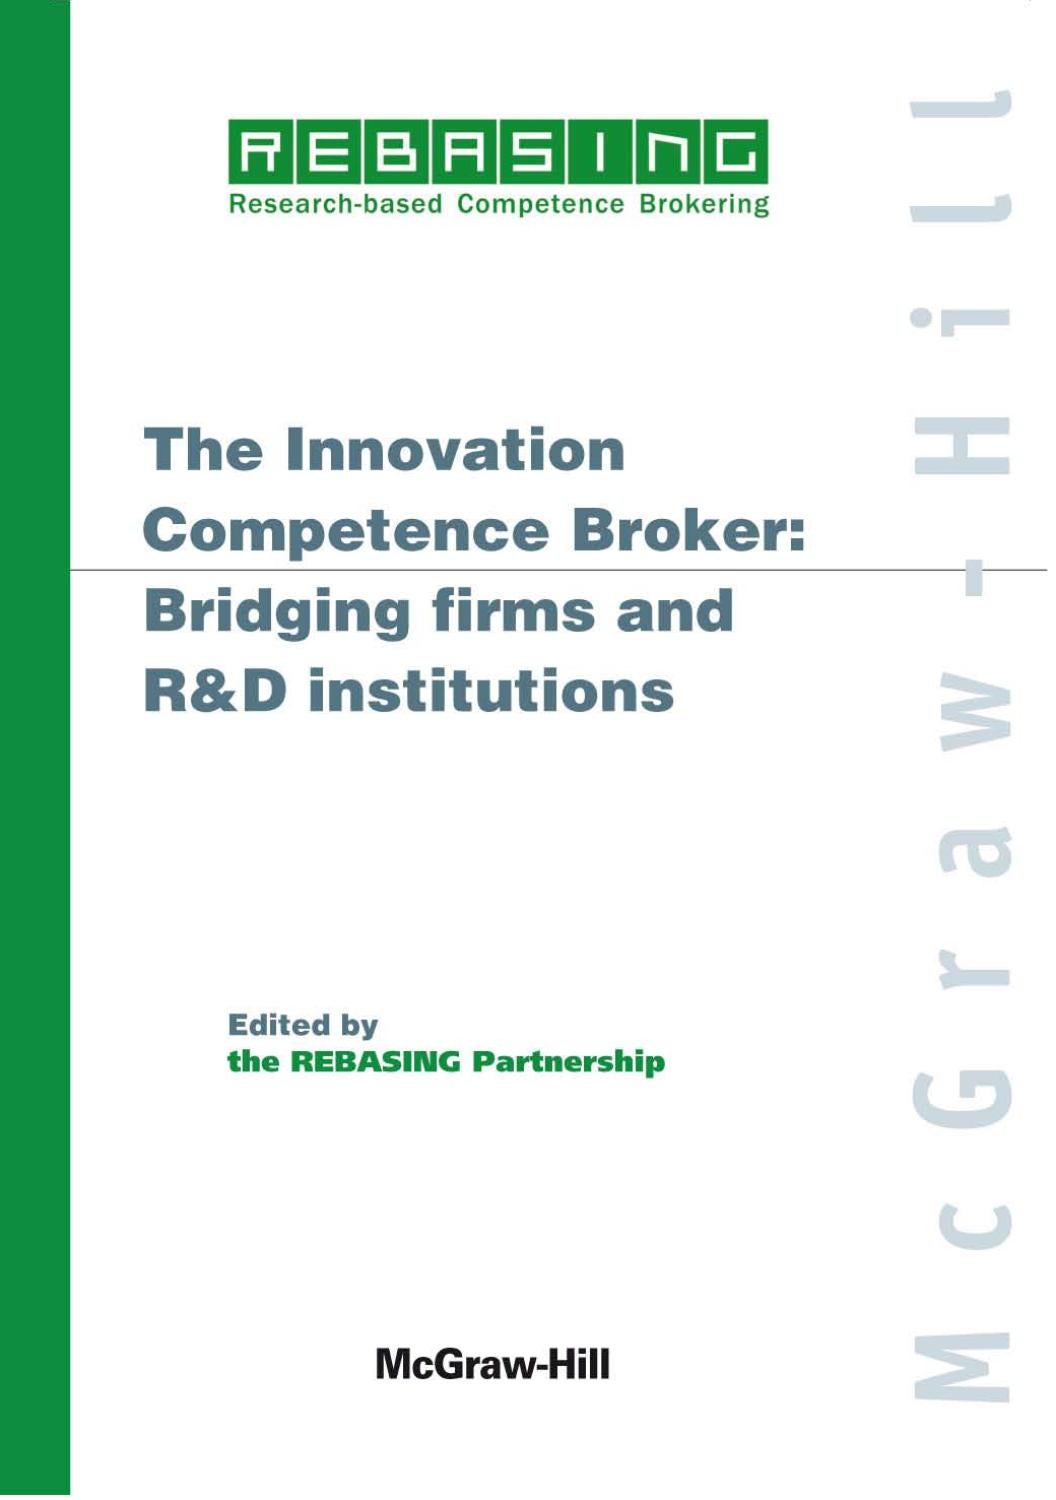 the innovation competence broker: bridging firms and r&d